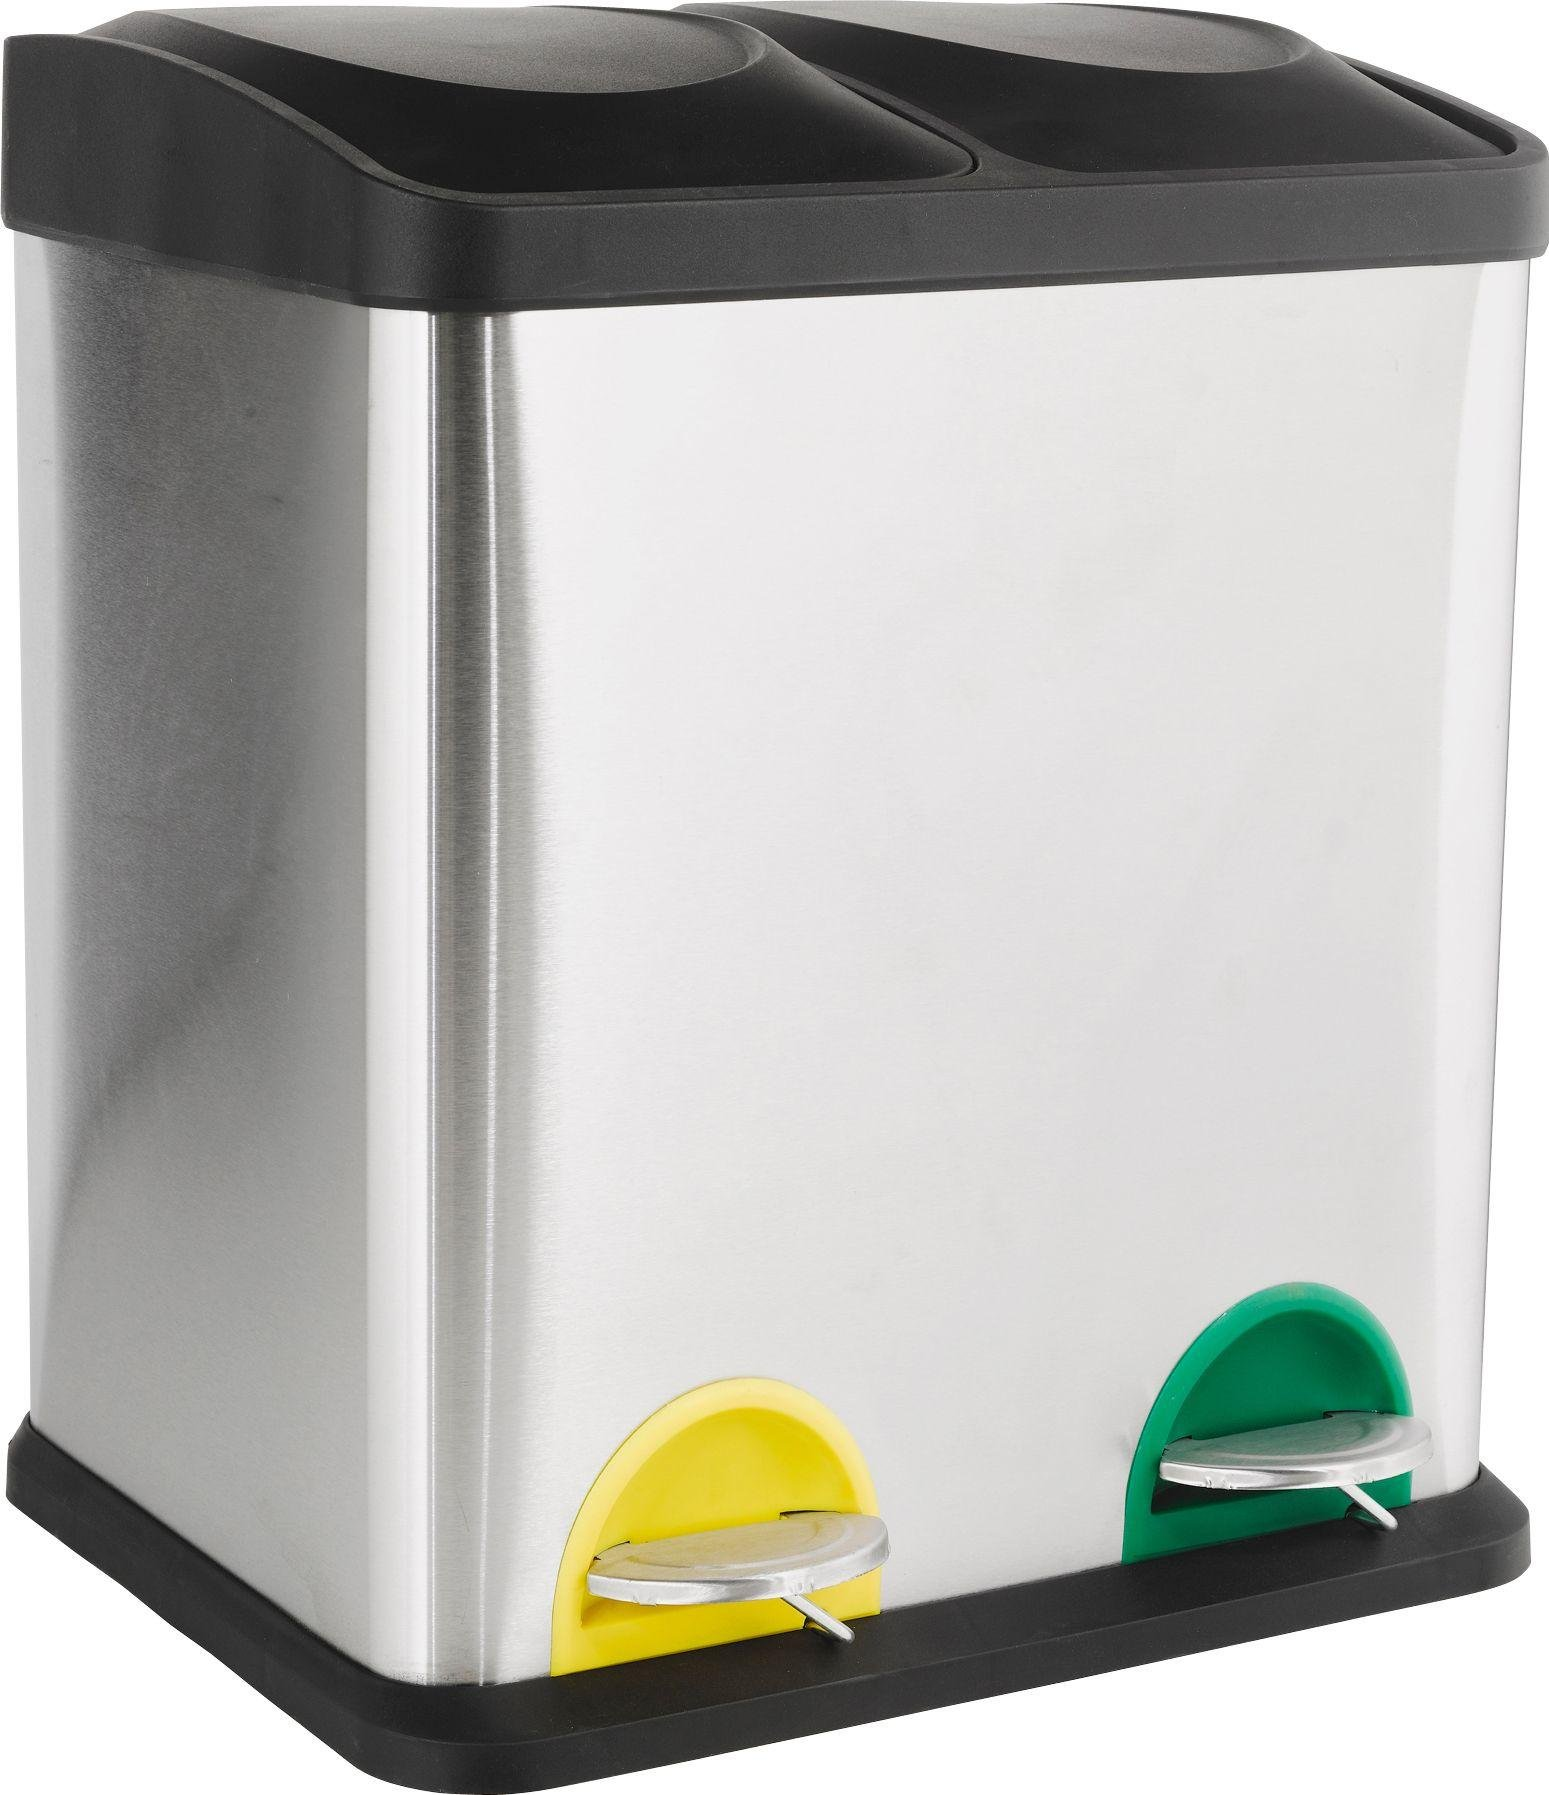 Delicieux Argos Home 30 Litre Recycling Pedal Bin With 2 Compartments